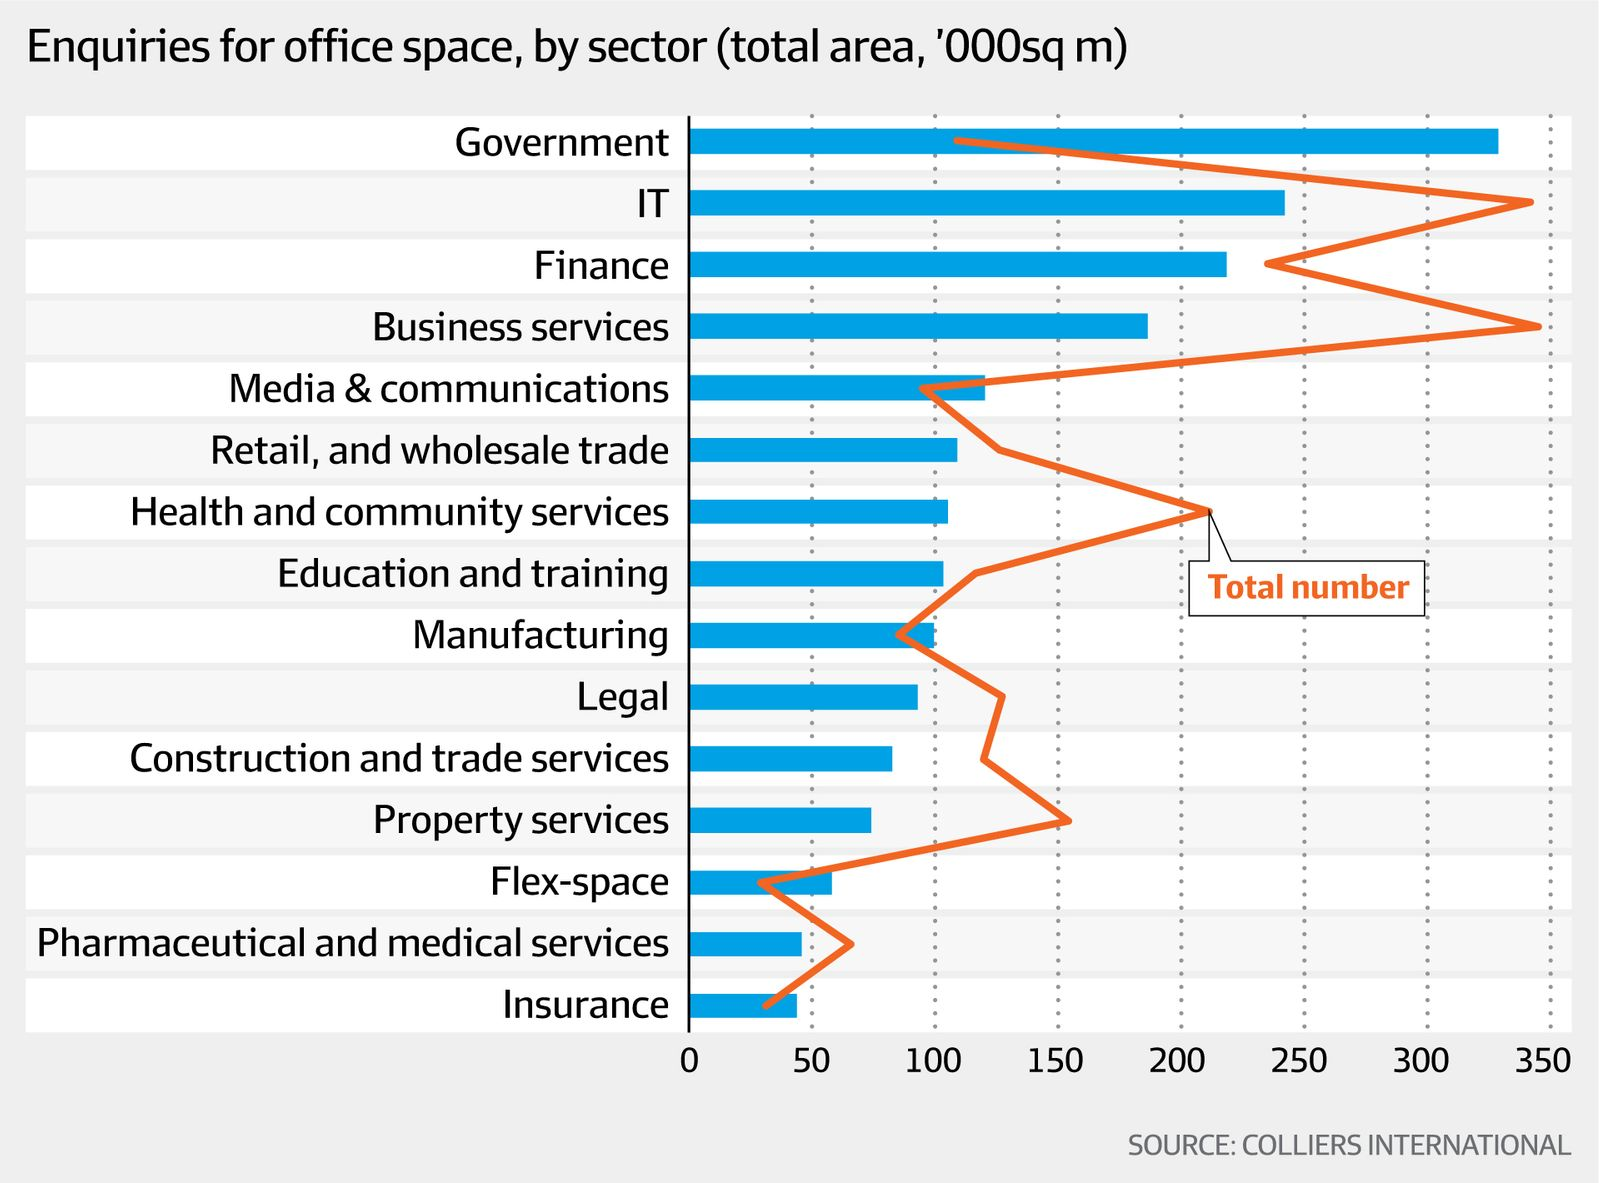 Enquiries for office space (Colliers International, AFR)